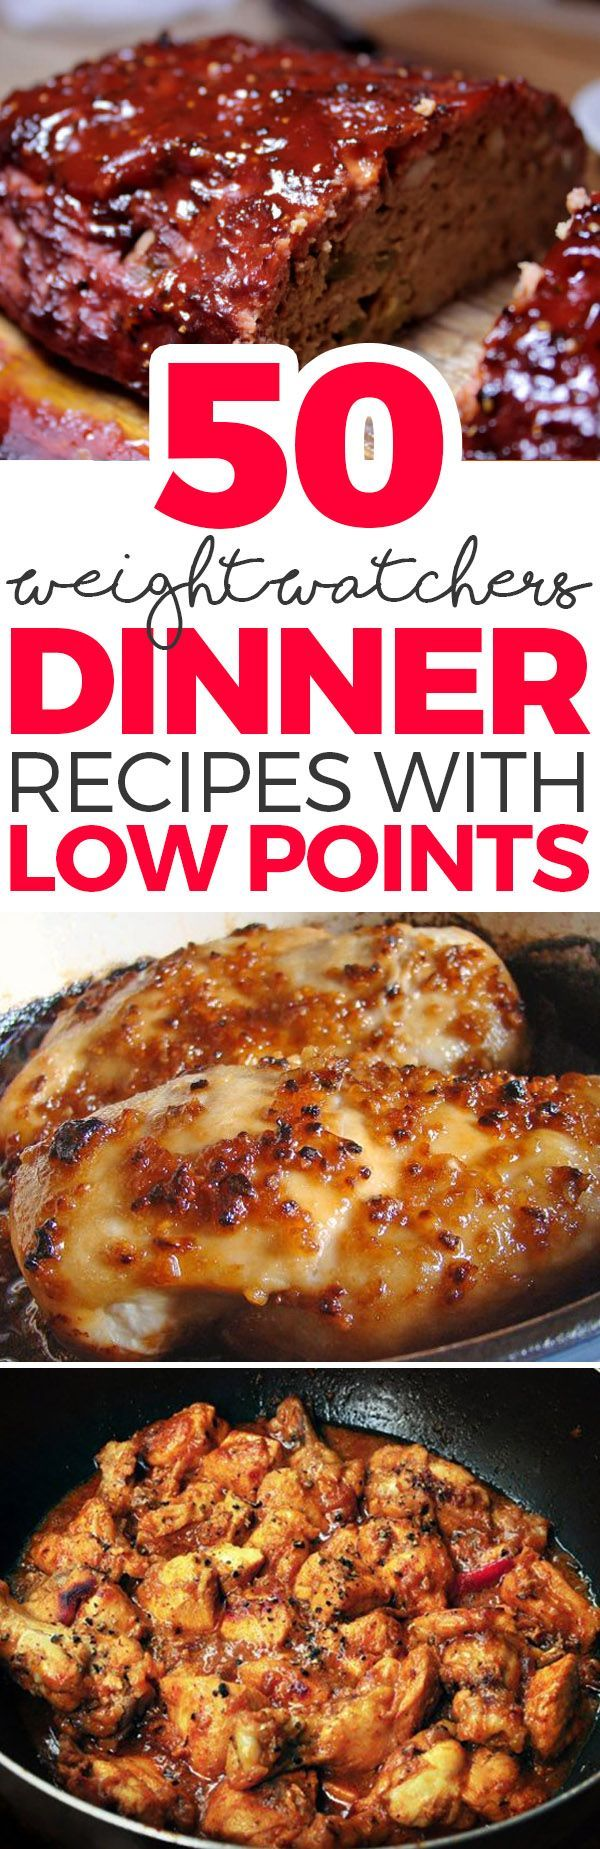 nice 50 Weight Watchers Dinner Recipes with Low Points...